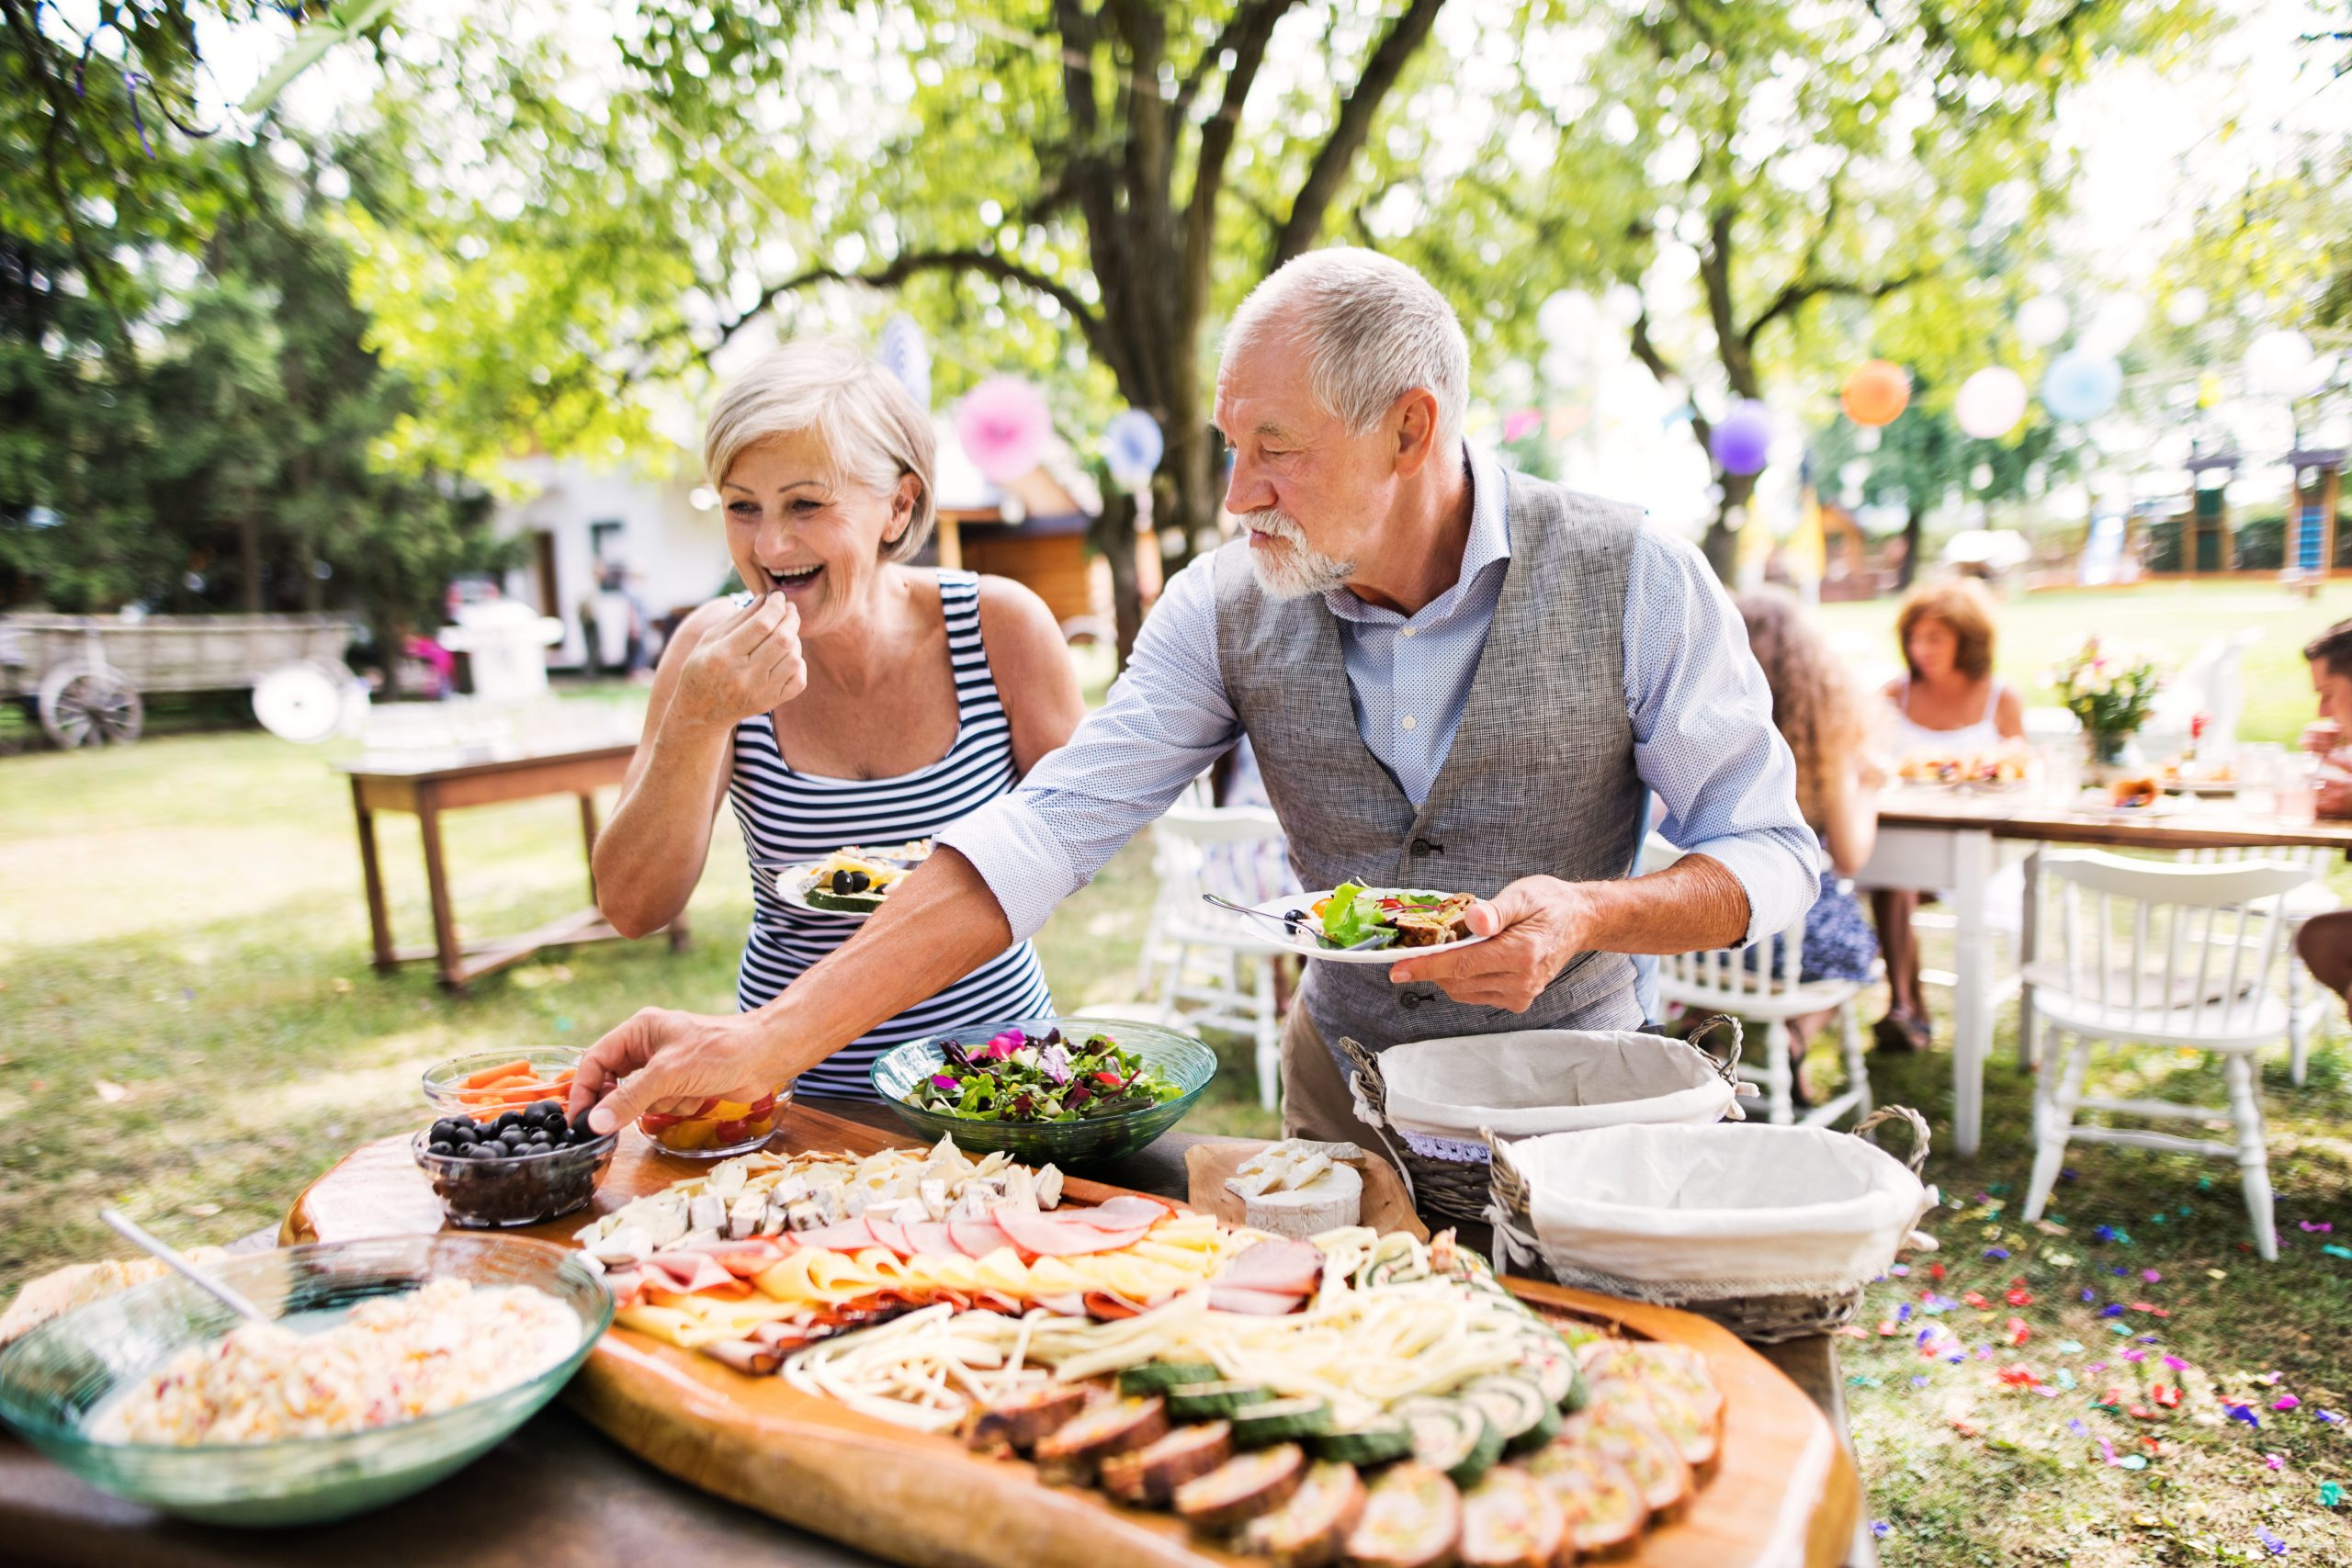 Elderly couple smiling and eating from a buffet table outside